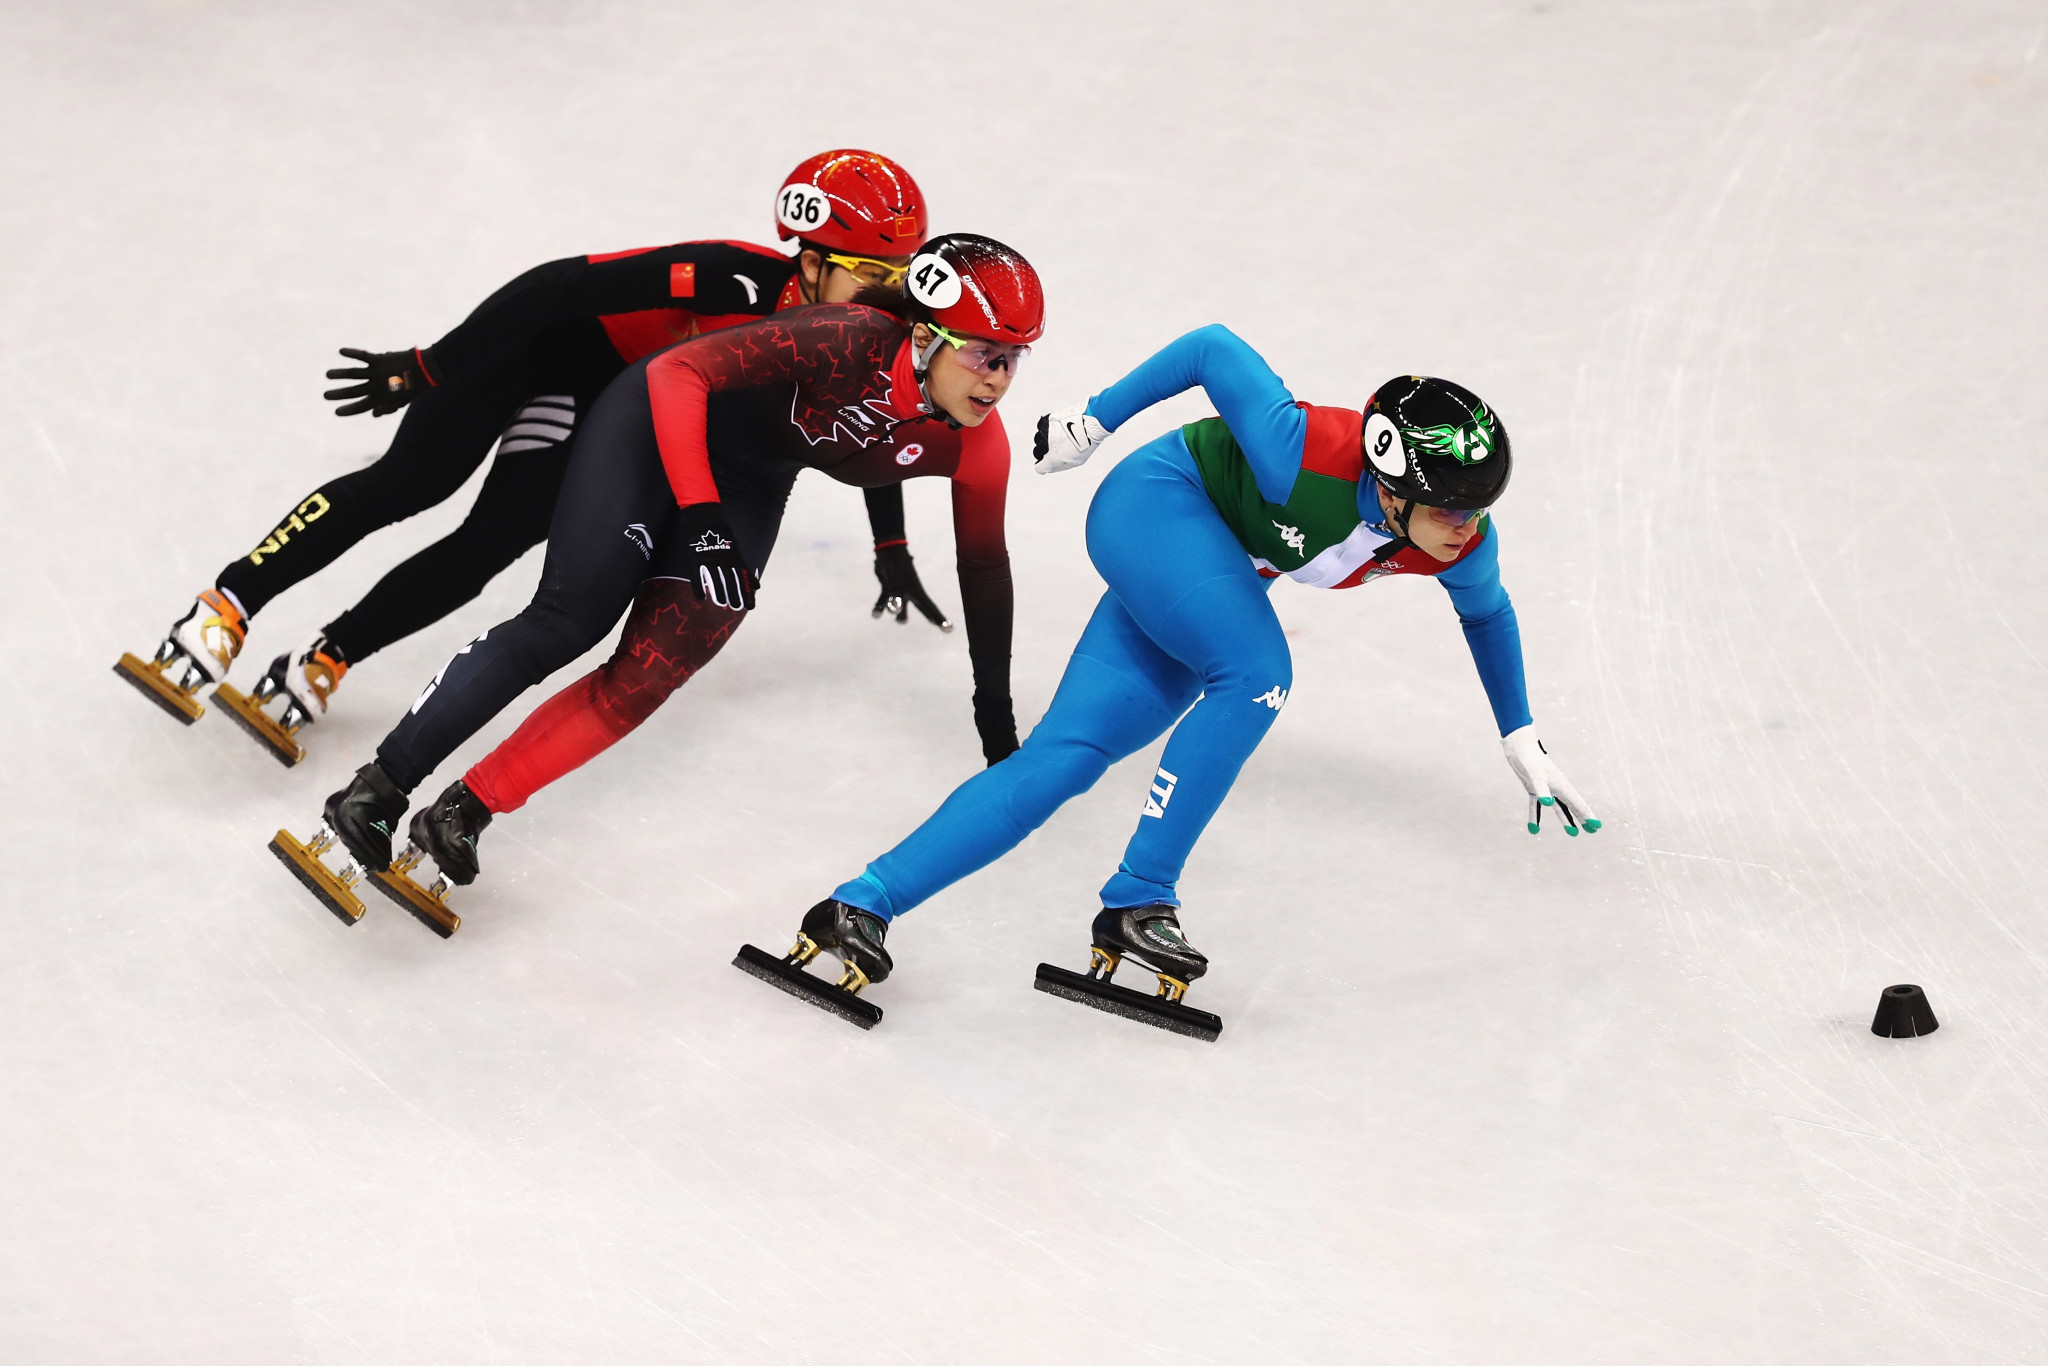 Choi and Fontana star on first day of Short Track World Cup leg in Beijing